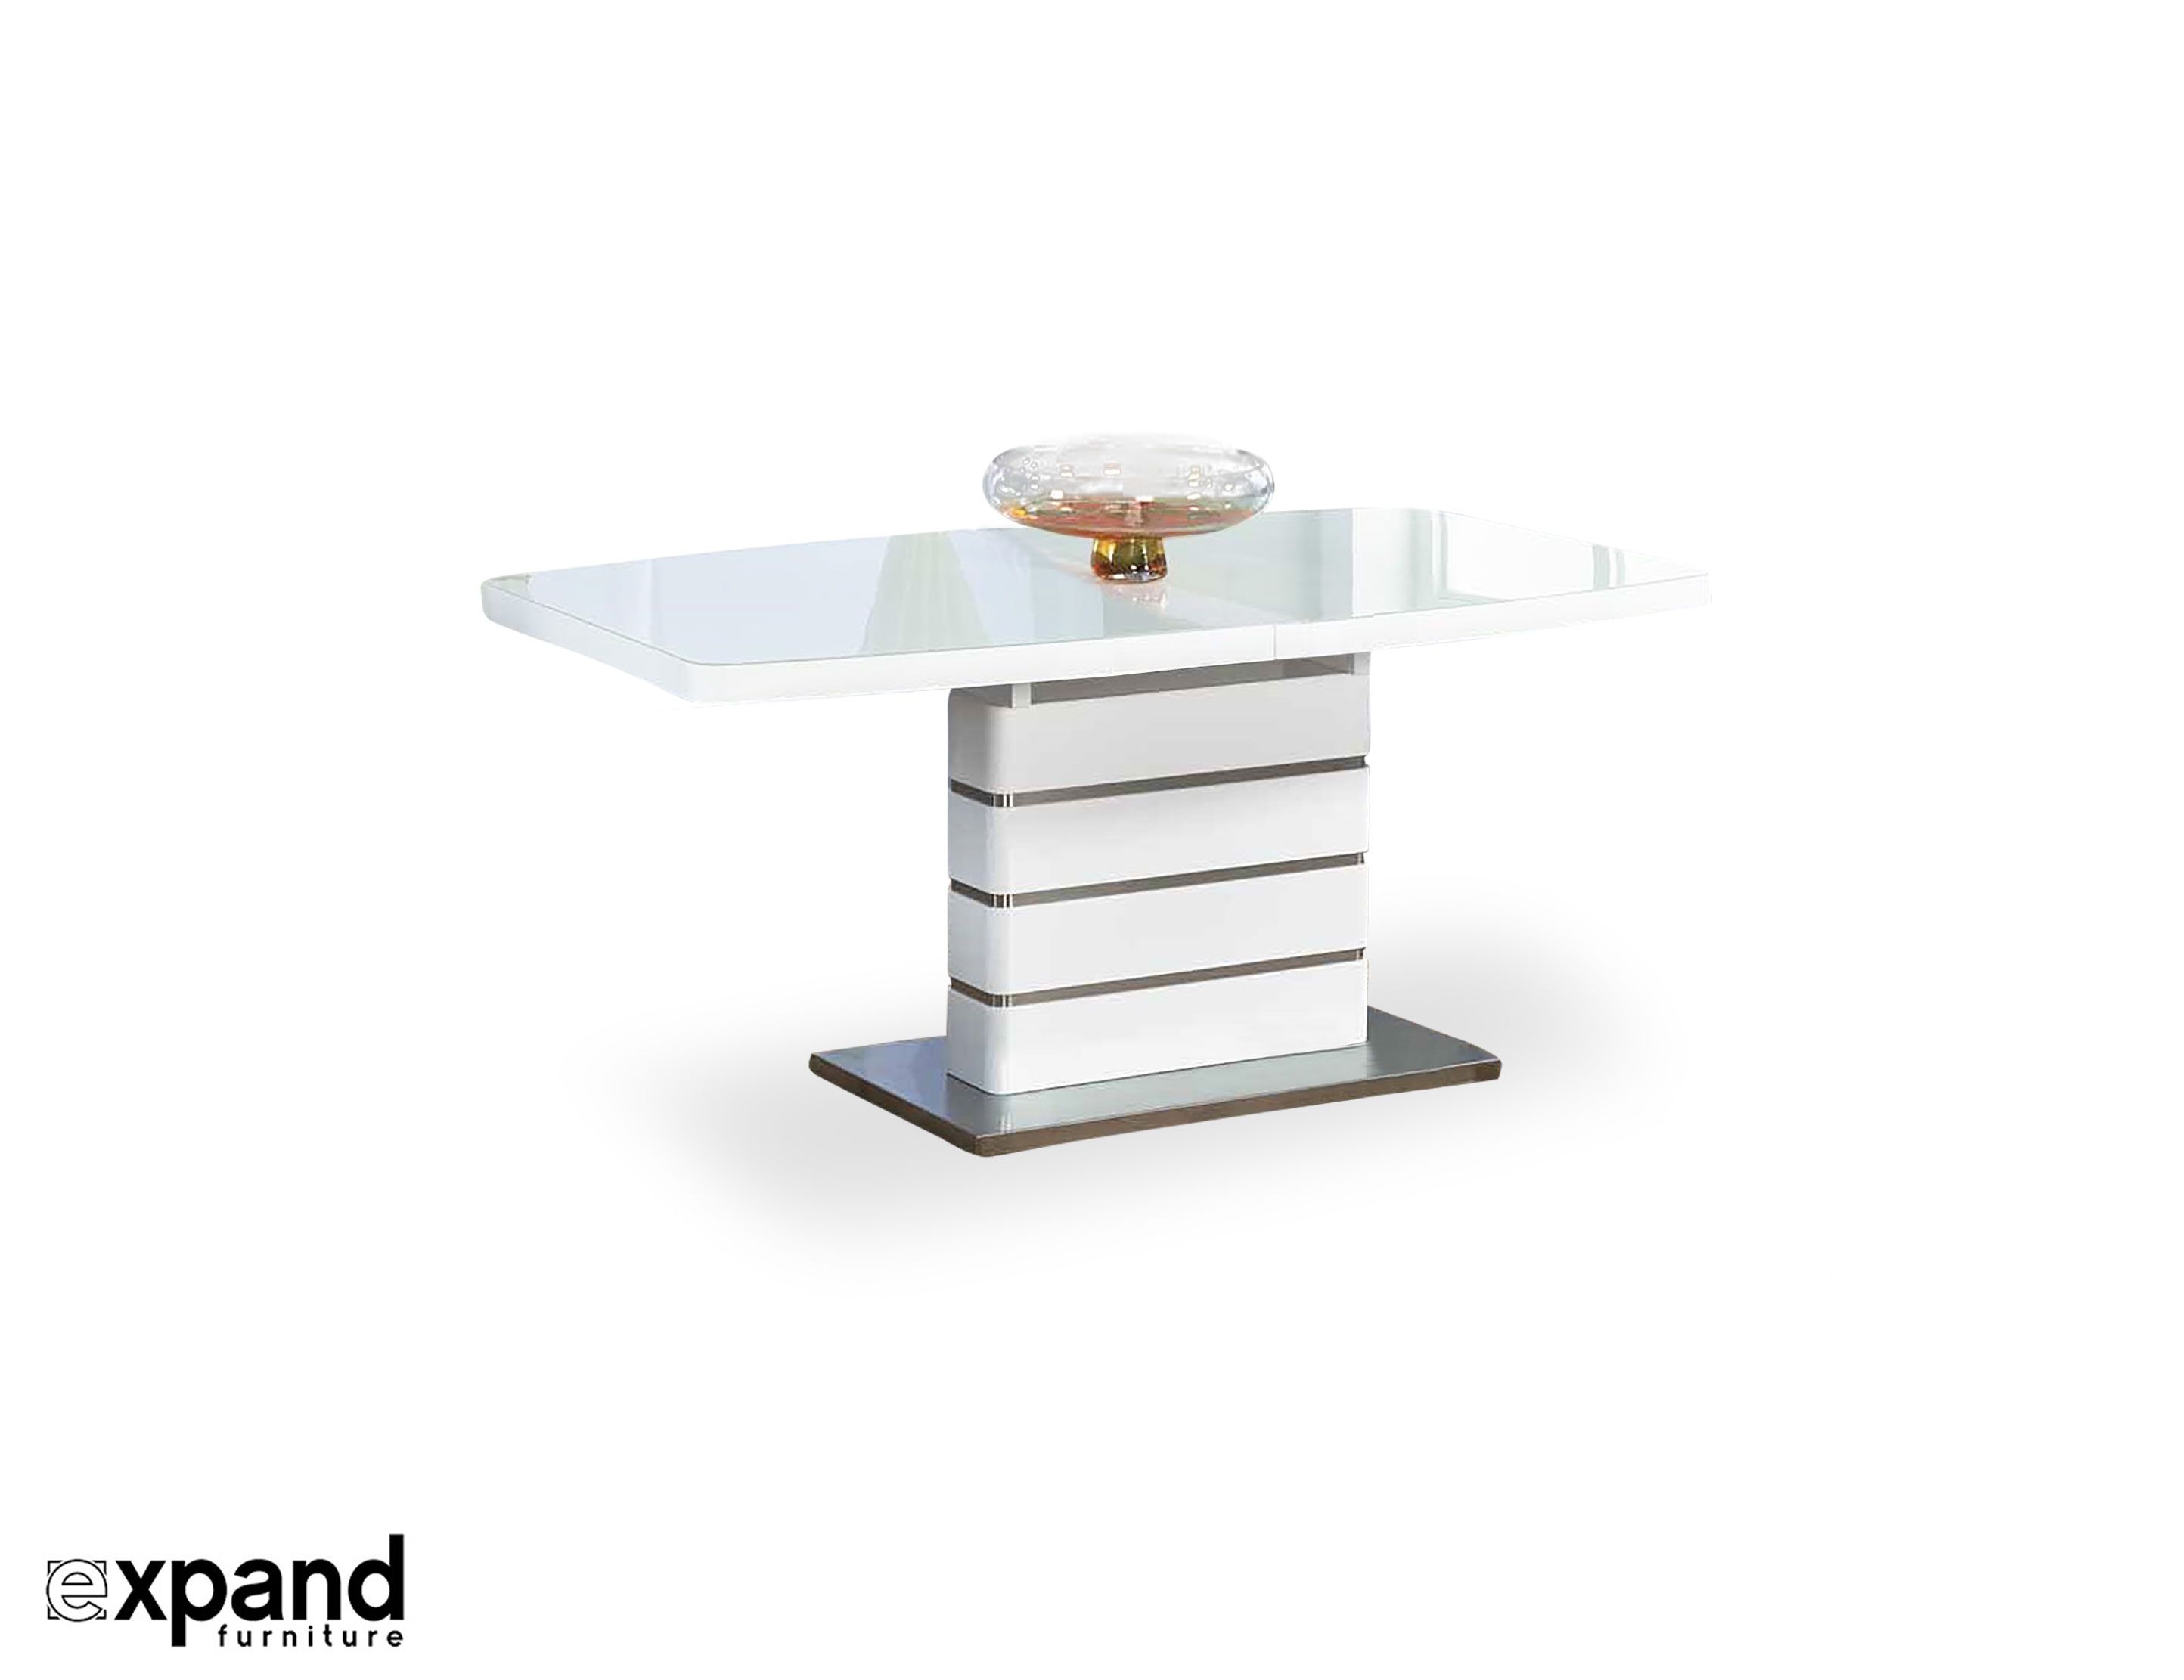 opulent ideas modern side tables. prev The Opulent White Glass Extendable Dining table  Expand Furniture